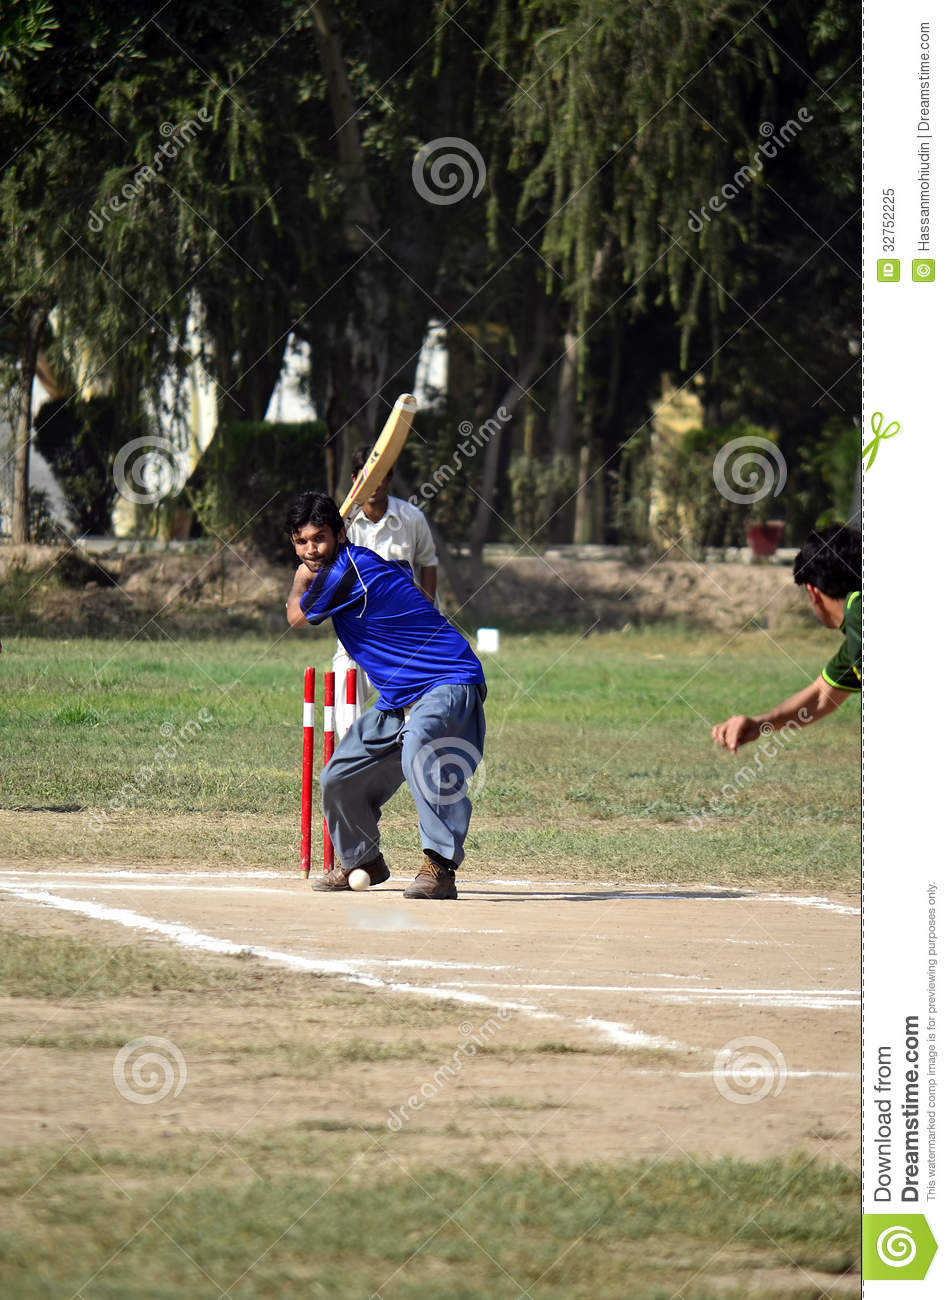 Playing time (cricket)